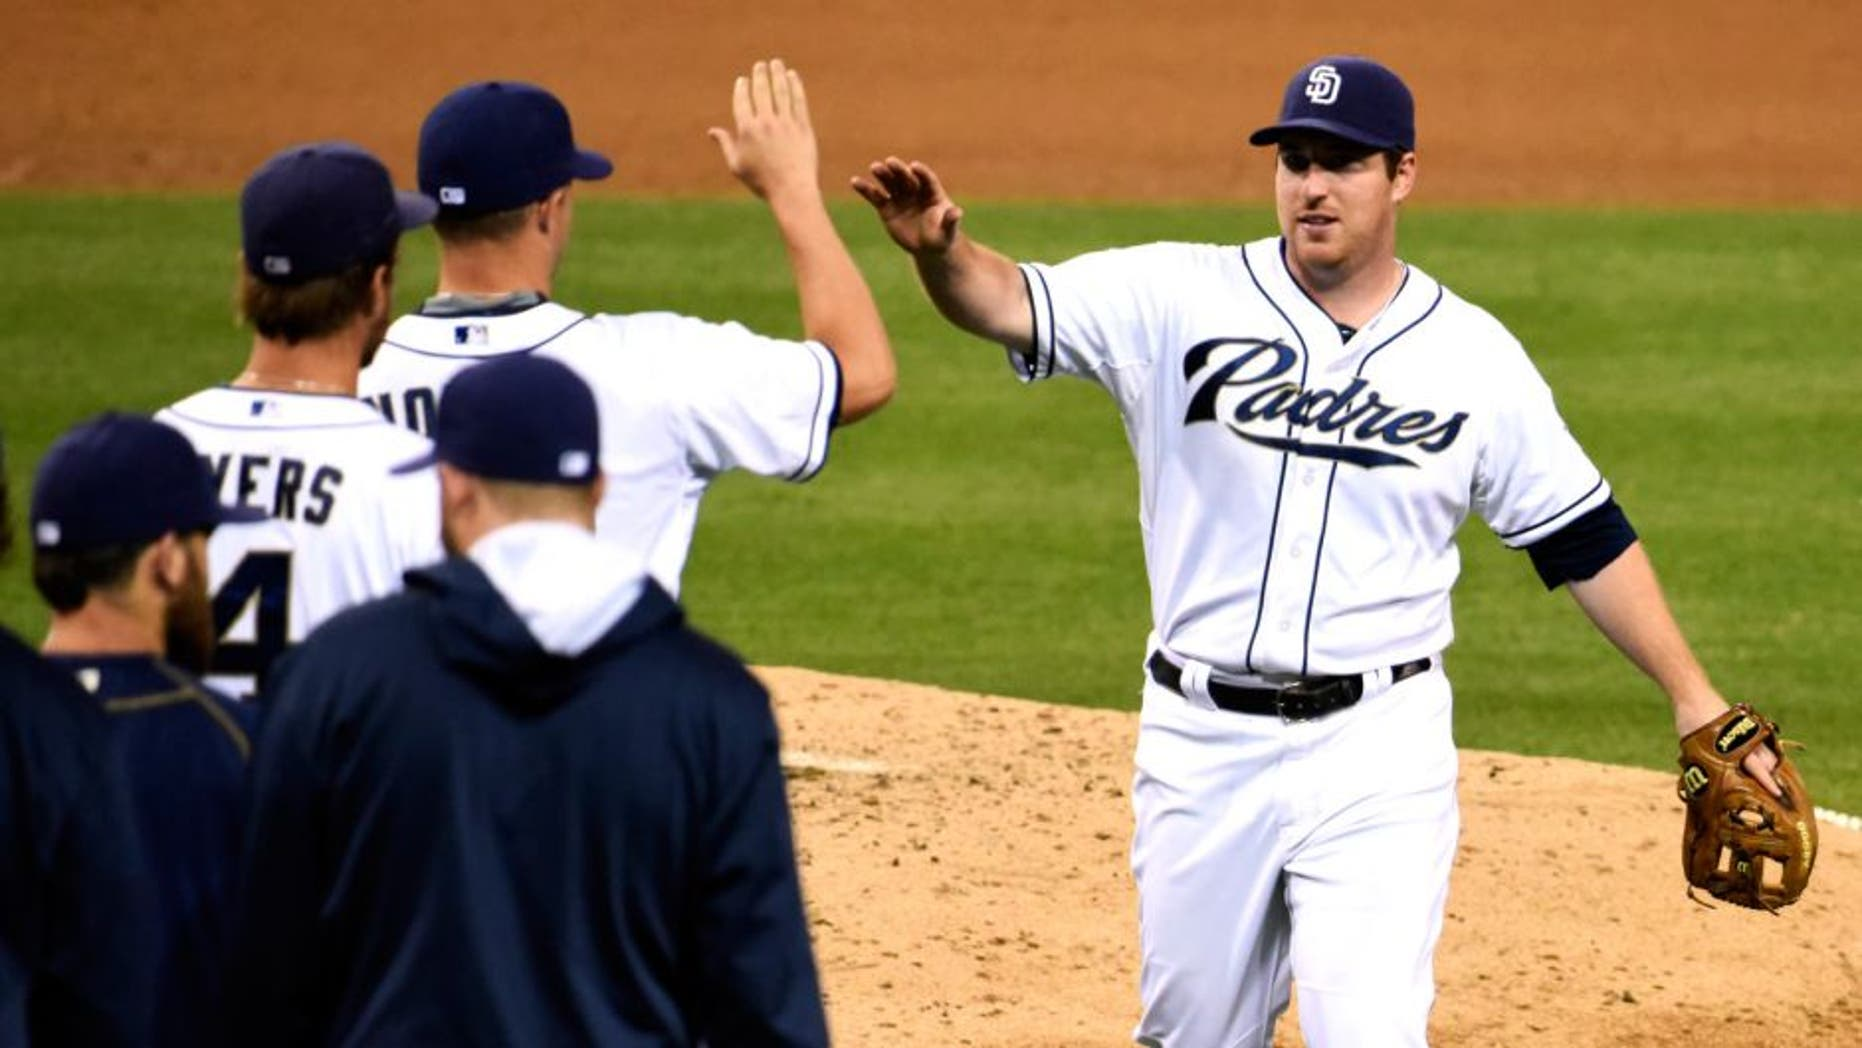 SAN DIEGO, CA - AUGUST 11: Jedd Gyorko #9 of the San Diego Padres, right, high-fives teammates after the Padres beat the Cincinnati Reds 11-6 in a baseball game at Petco Park August 11, 2015 in San Diego, California. (Photo by Denis Poroy/Getty Images)